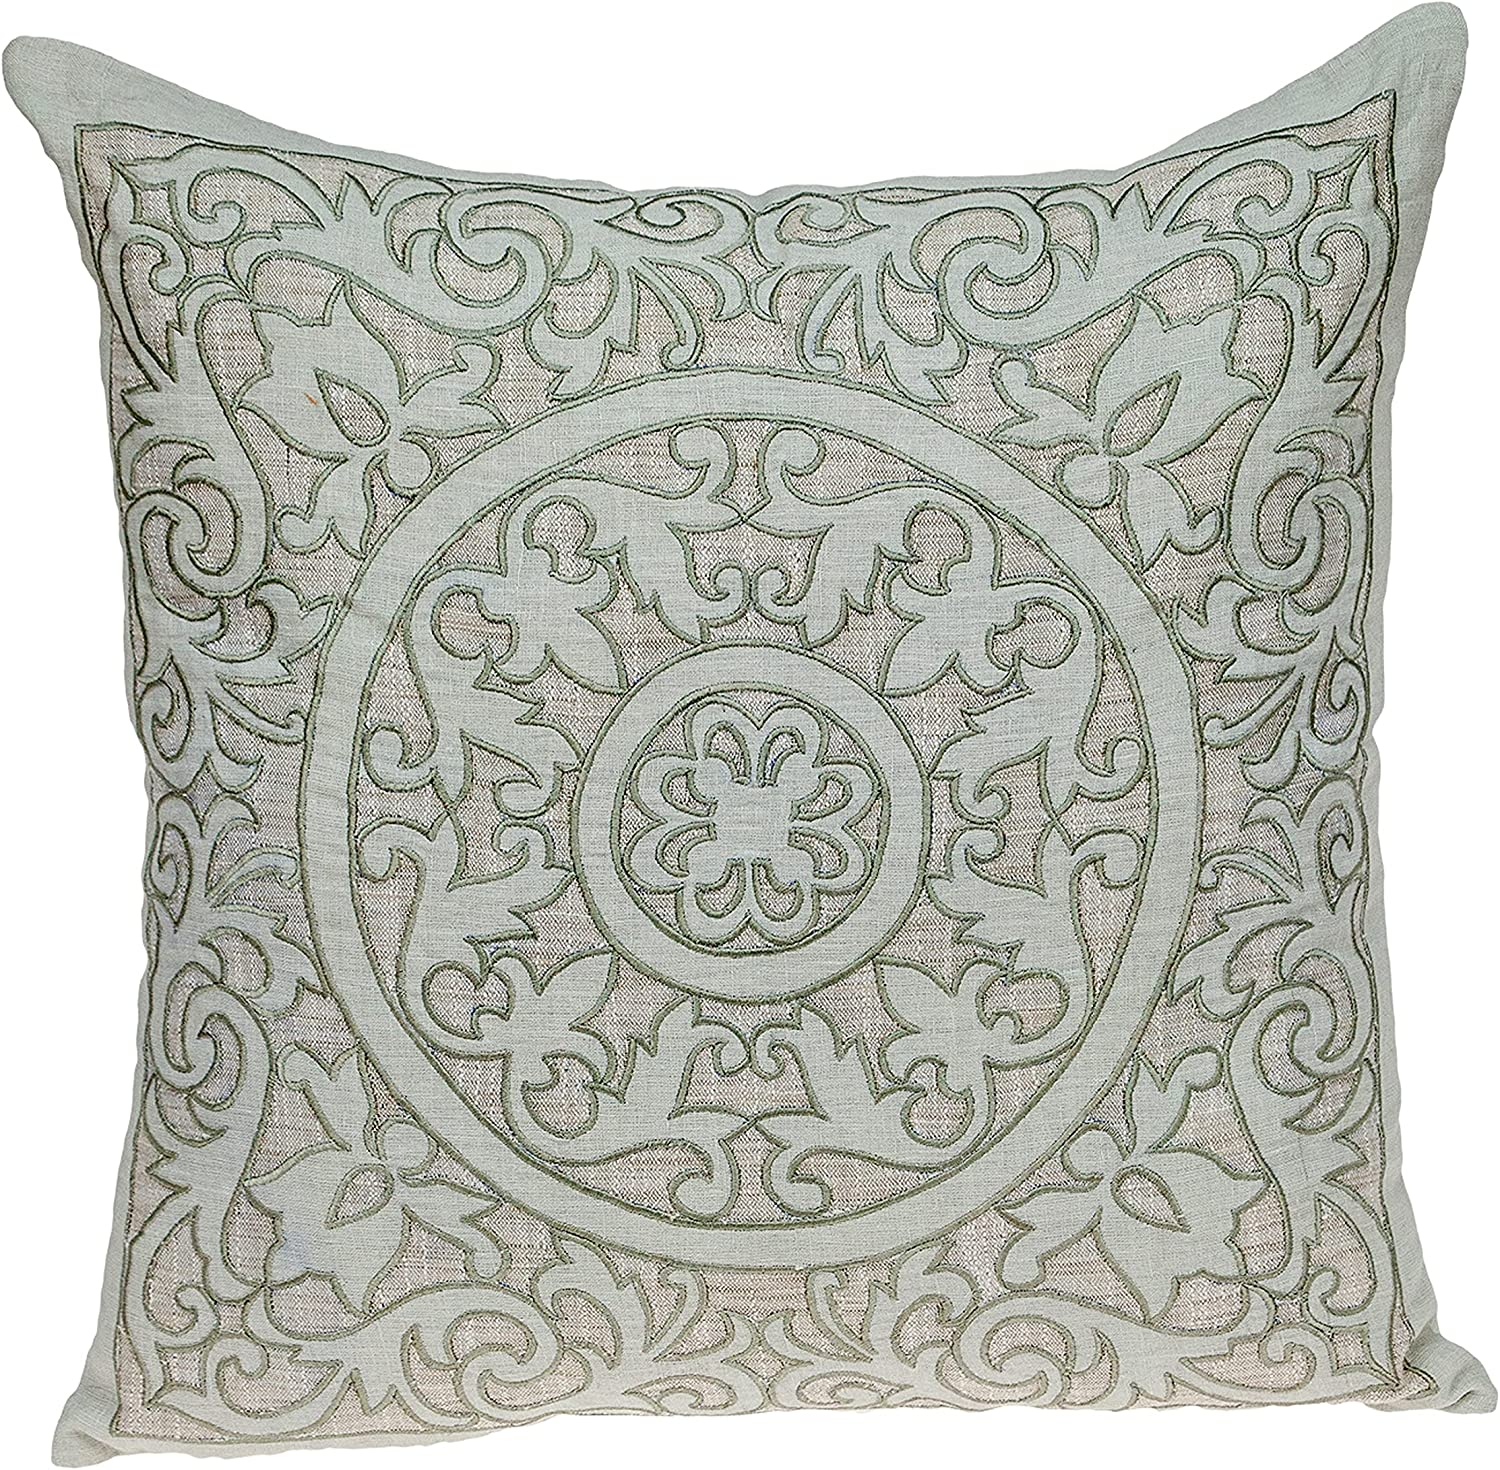 Parkland Collection Fluera Traditional Beige Discount is also underway with Pillow New product! New type P Cover